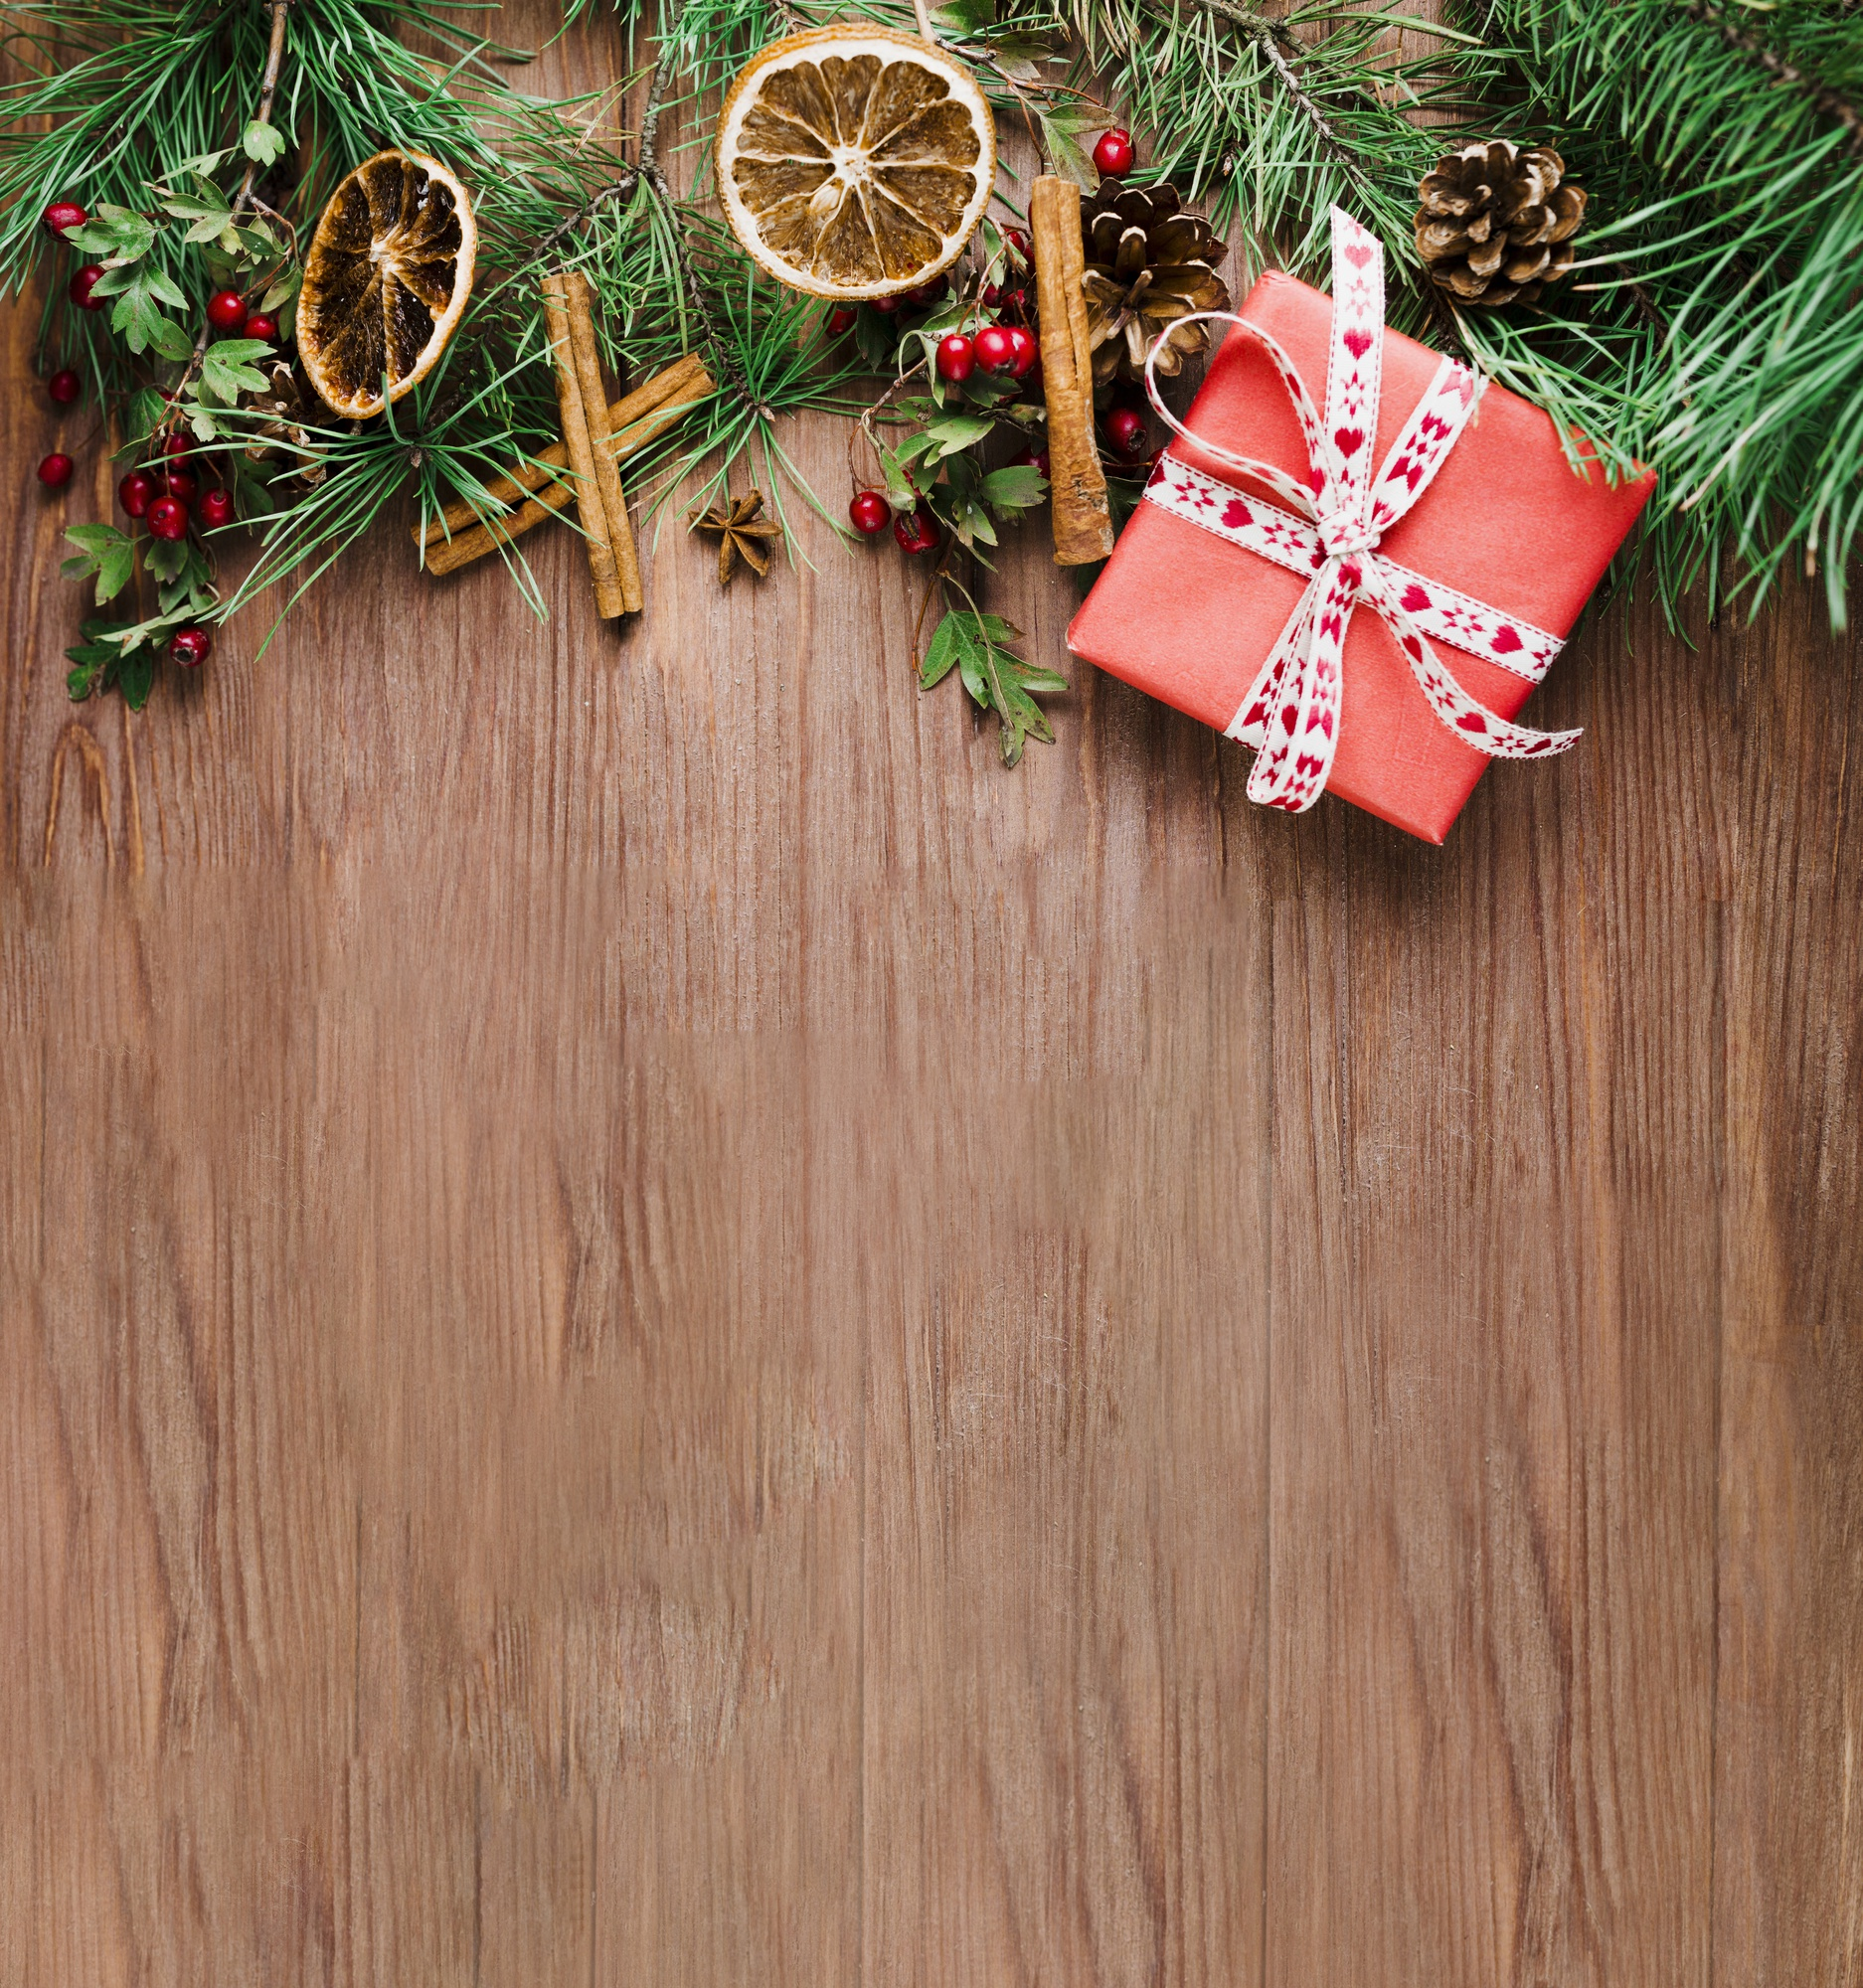 Wood plank with Christmas branch